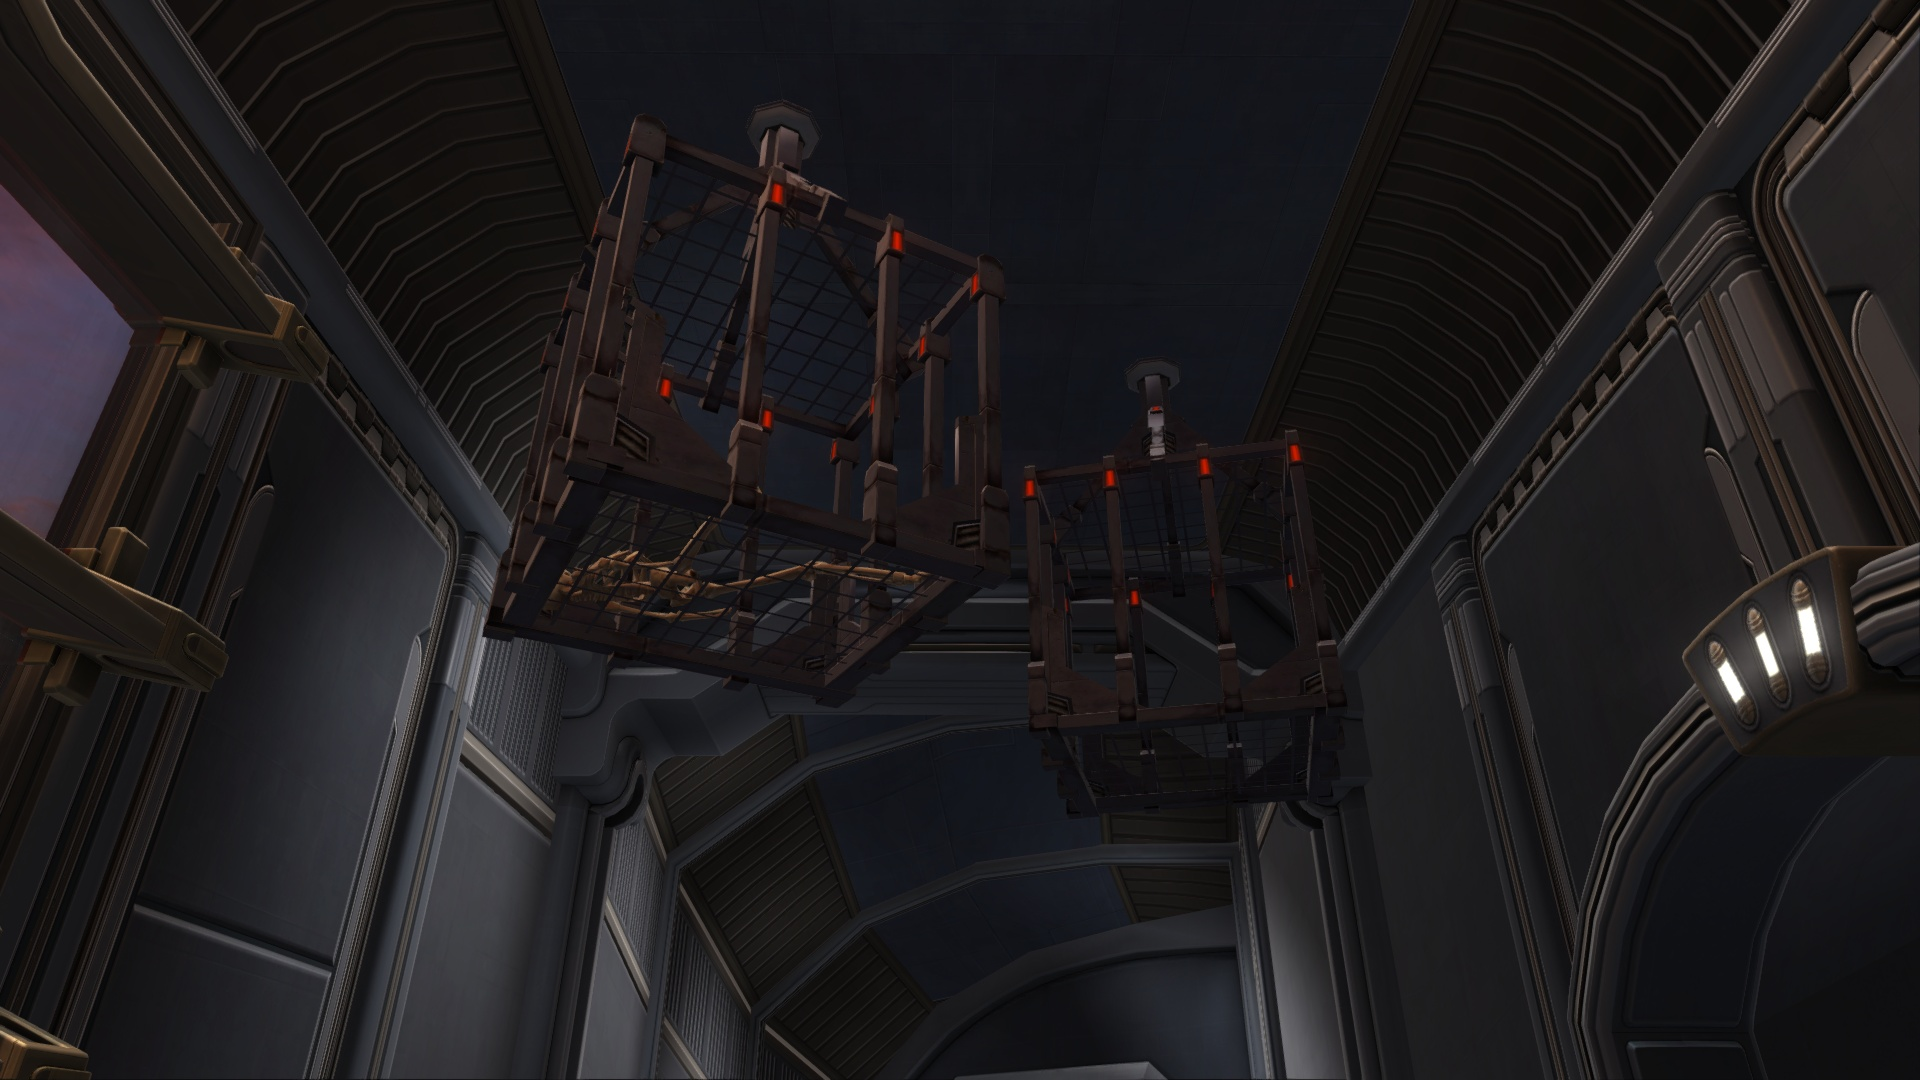 Bounty Ceiling Cages